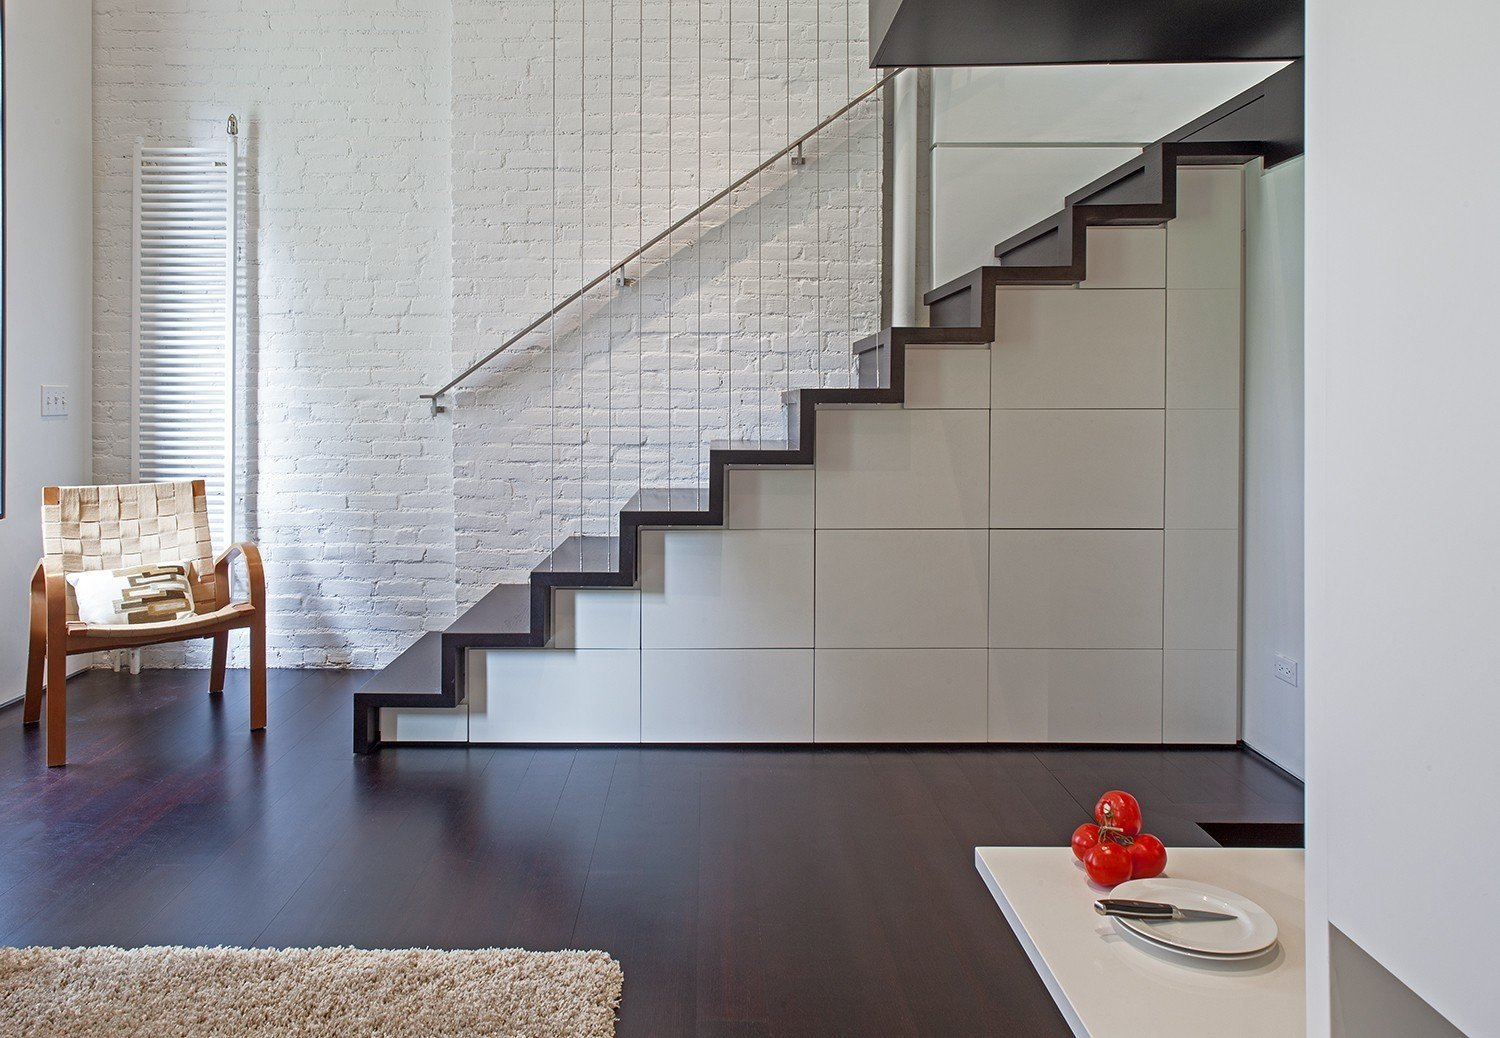 Stairs with built-in storage in the form of cabinets and drawers.